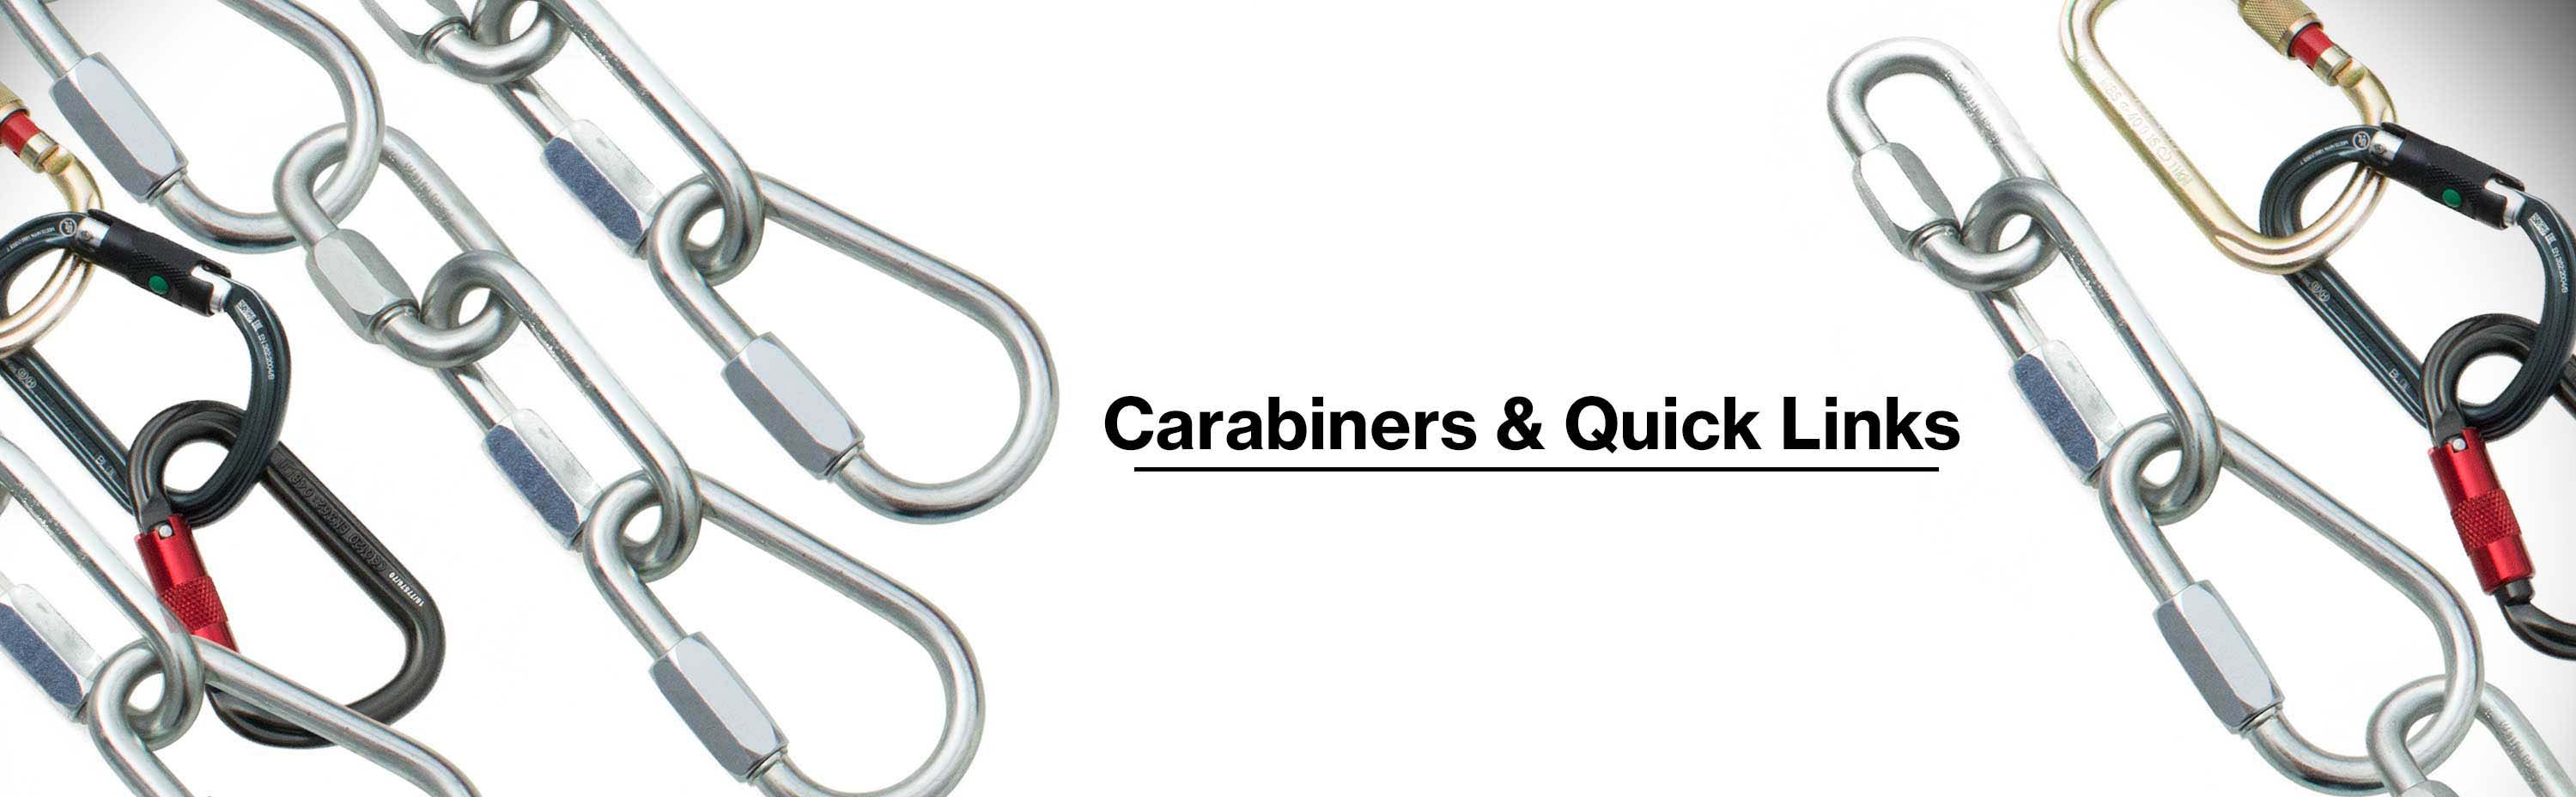 Carabiners and Quick Links